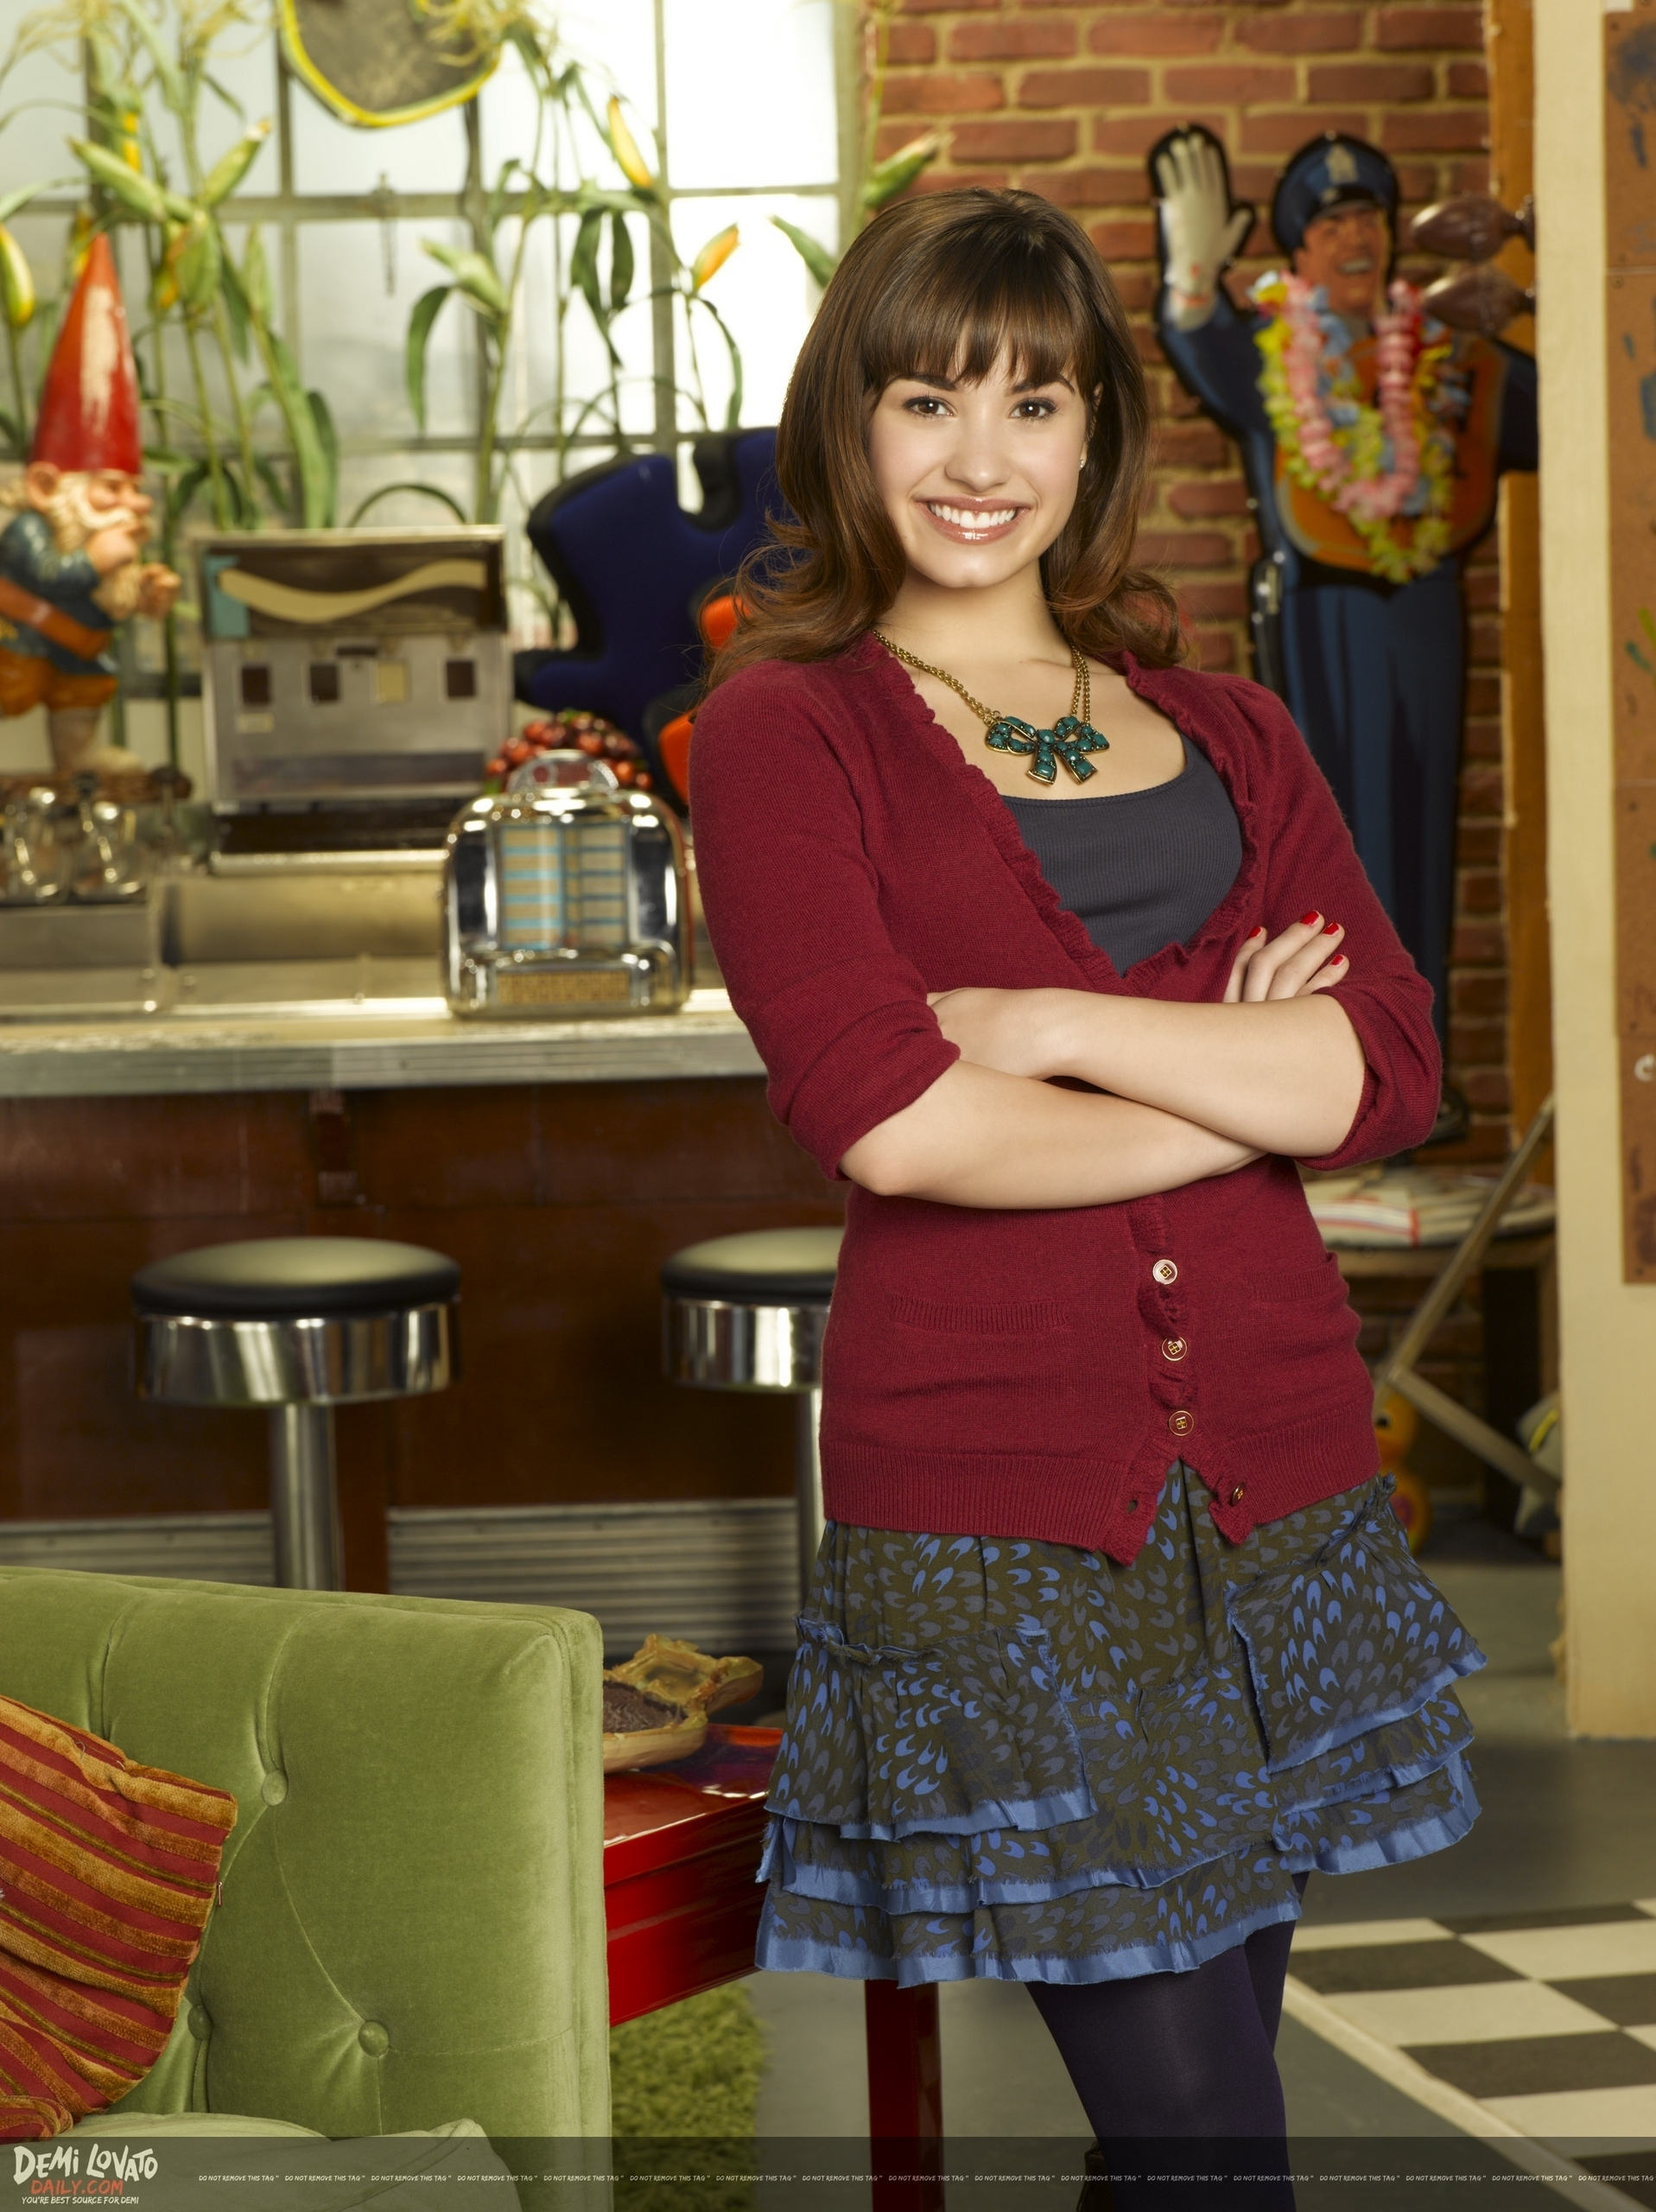 Anichu90 Demi Lovato - Sonny With A Chance Season 1 promoshoot (2009)